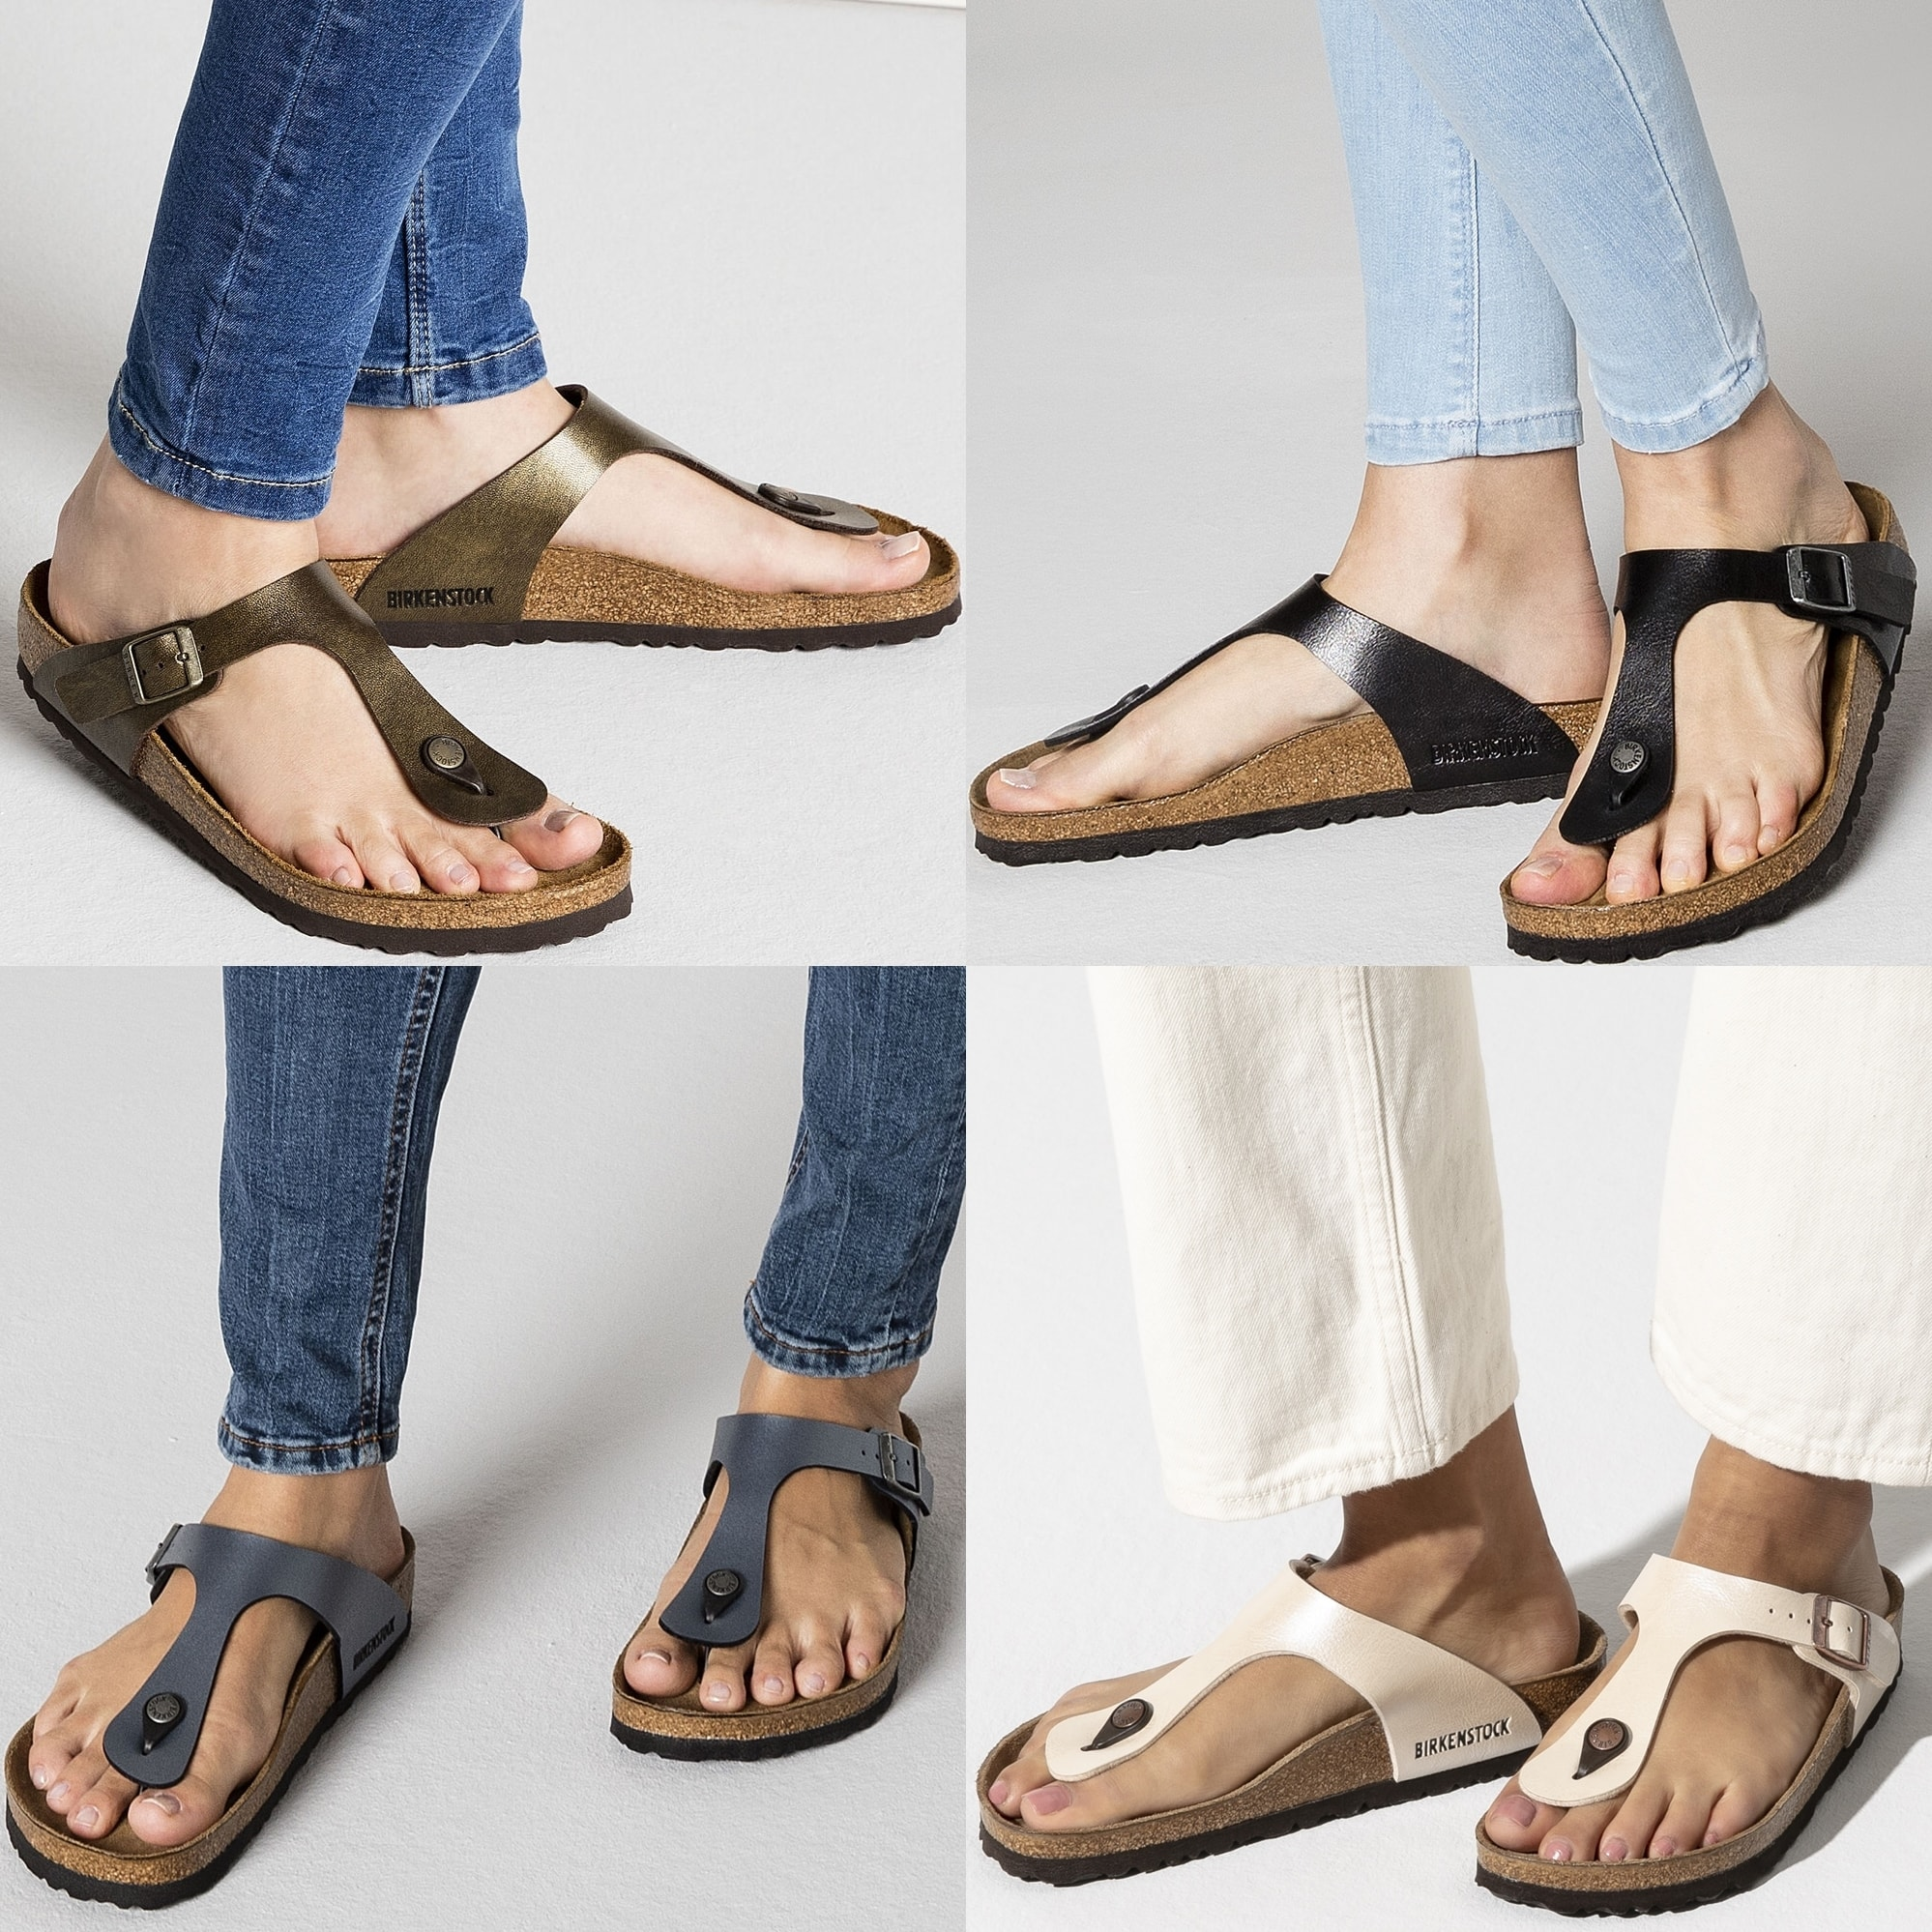 This sandal pairs a buckled strap with a legendary footbed that mimics the shape of the foot with excellent support